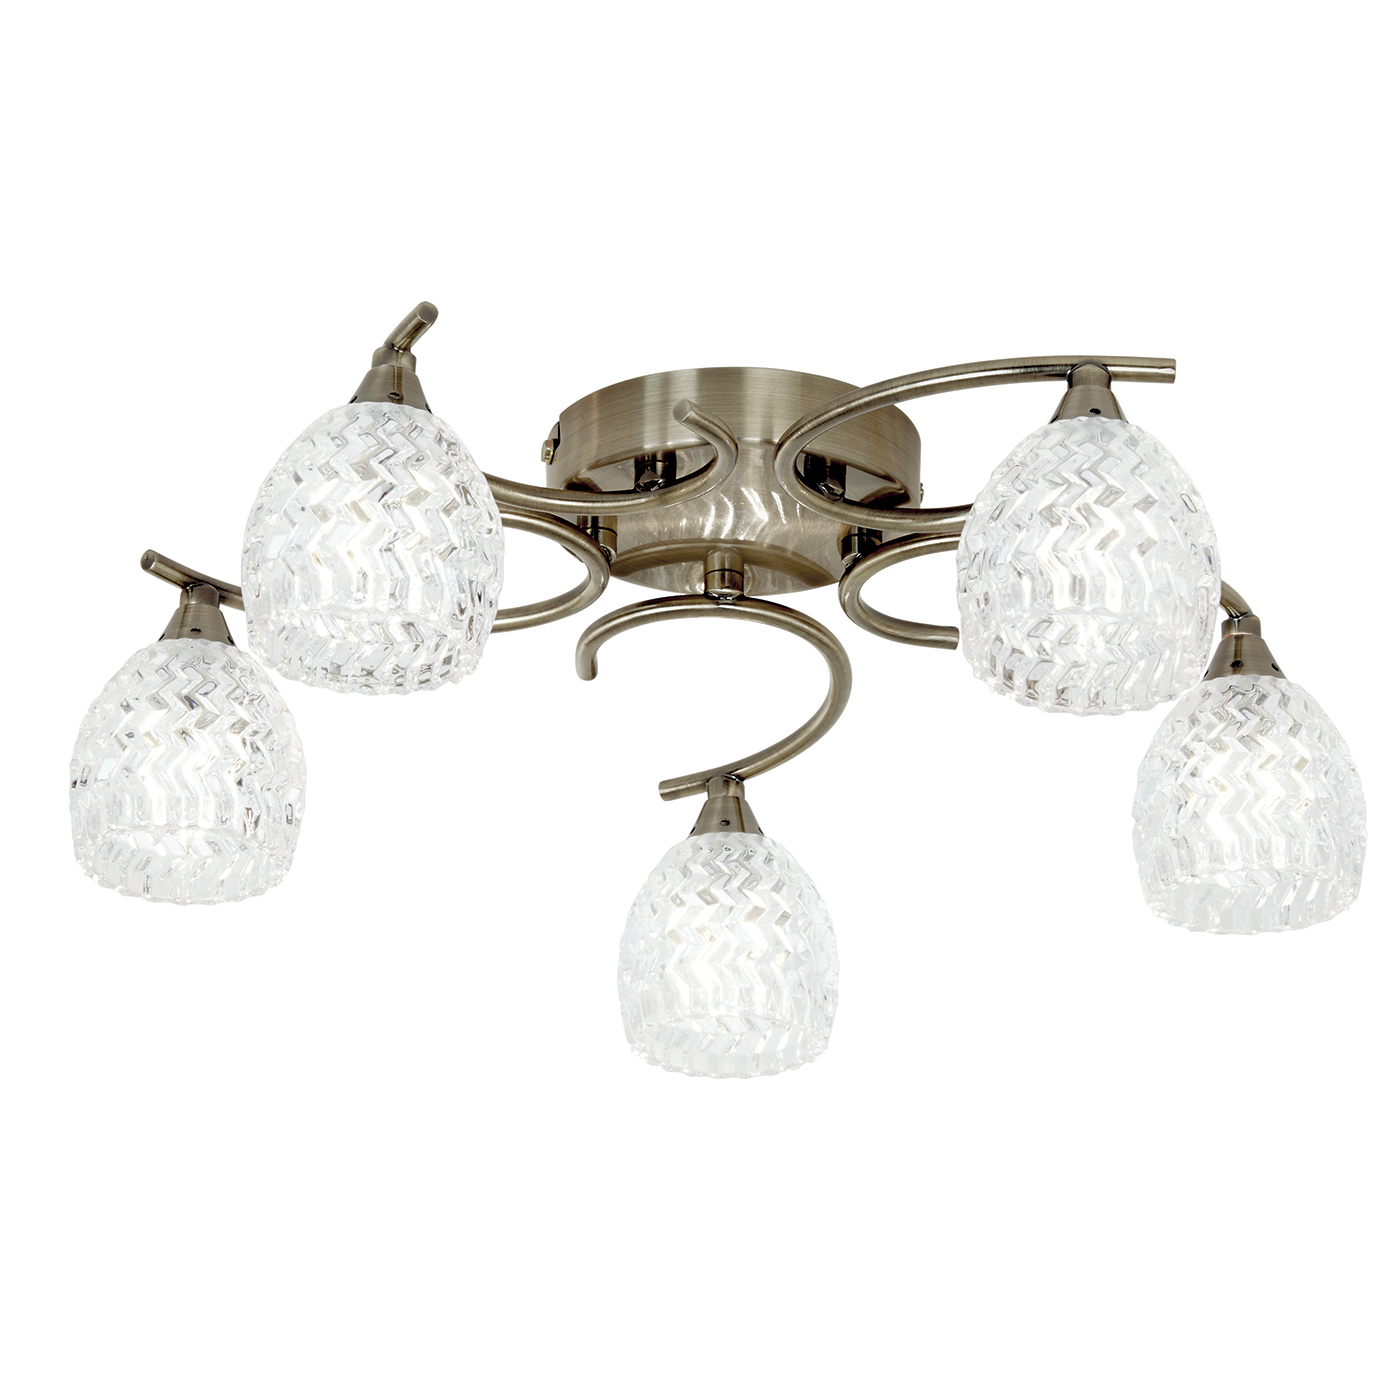 Endon Boyer ceiling light 5x 33W Antique brass effect & clear glass pattern Thumbnail 1